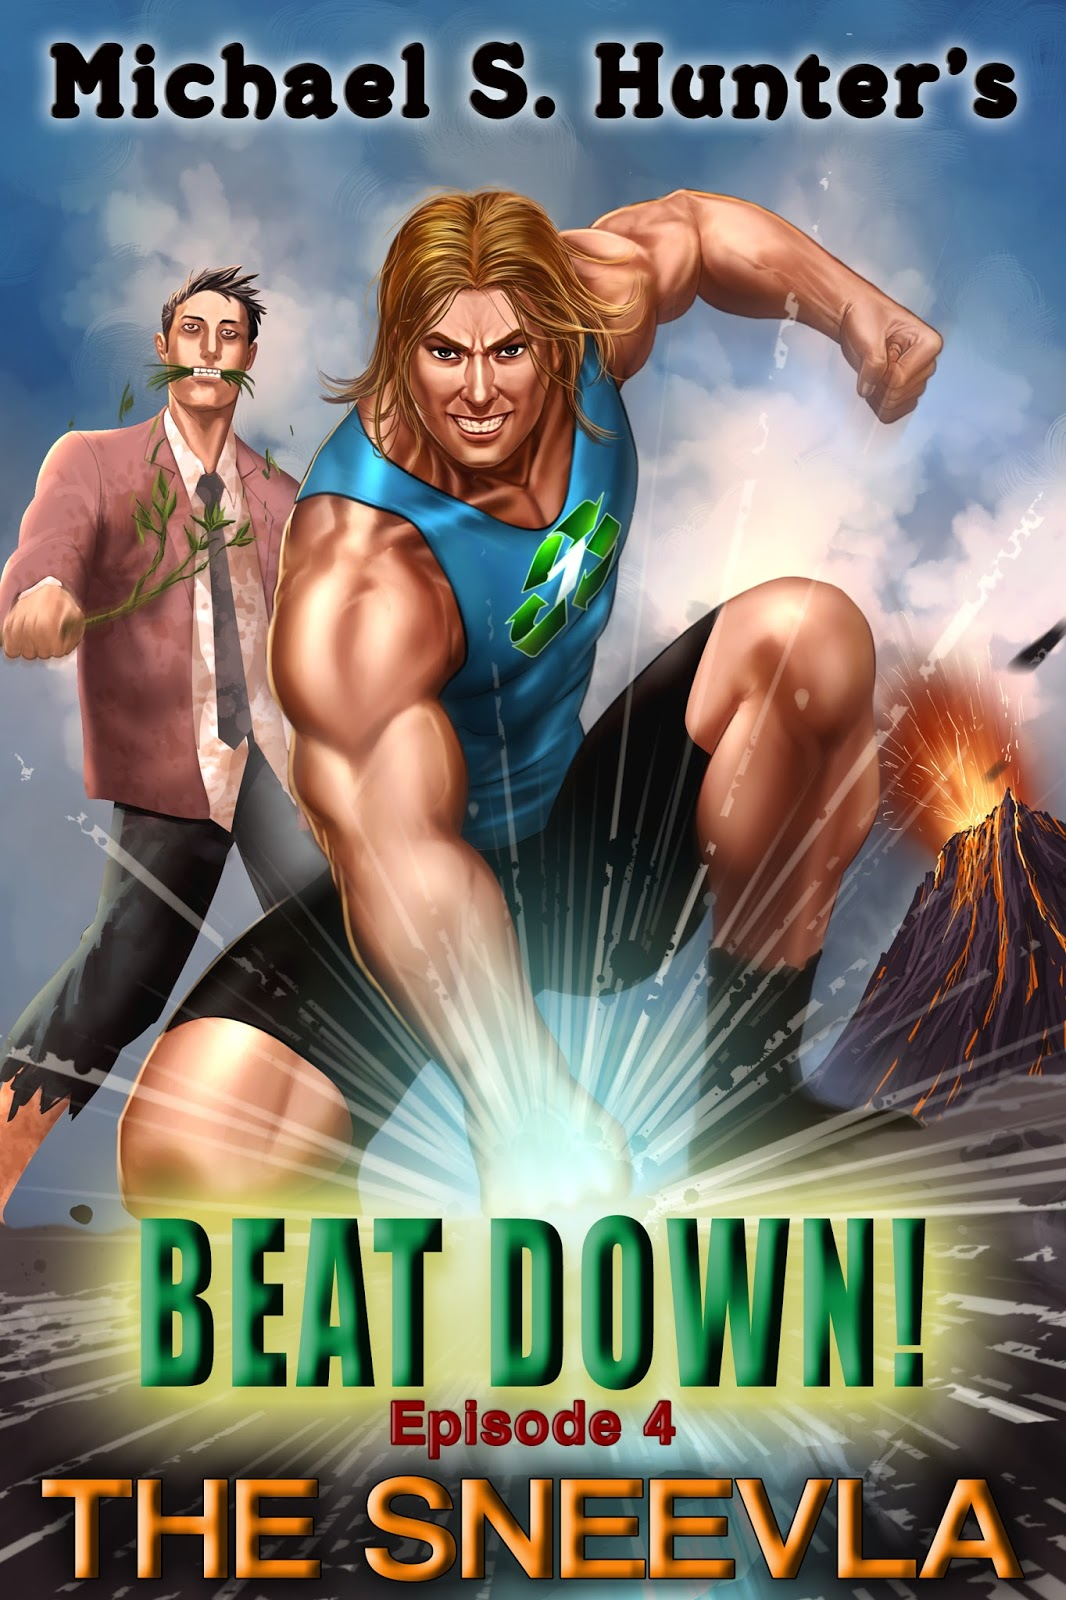 Beat Down! new releases mailing list -